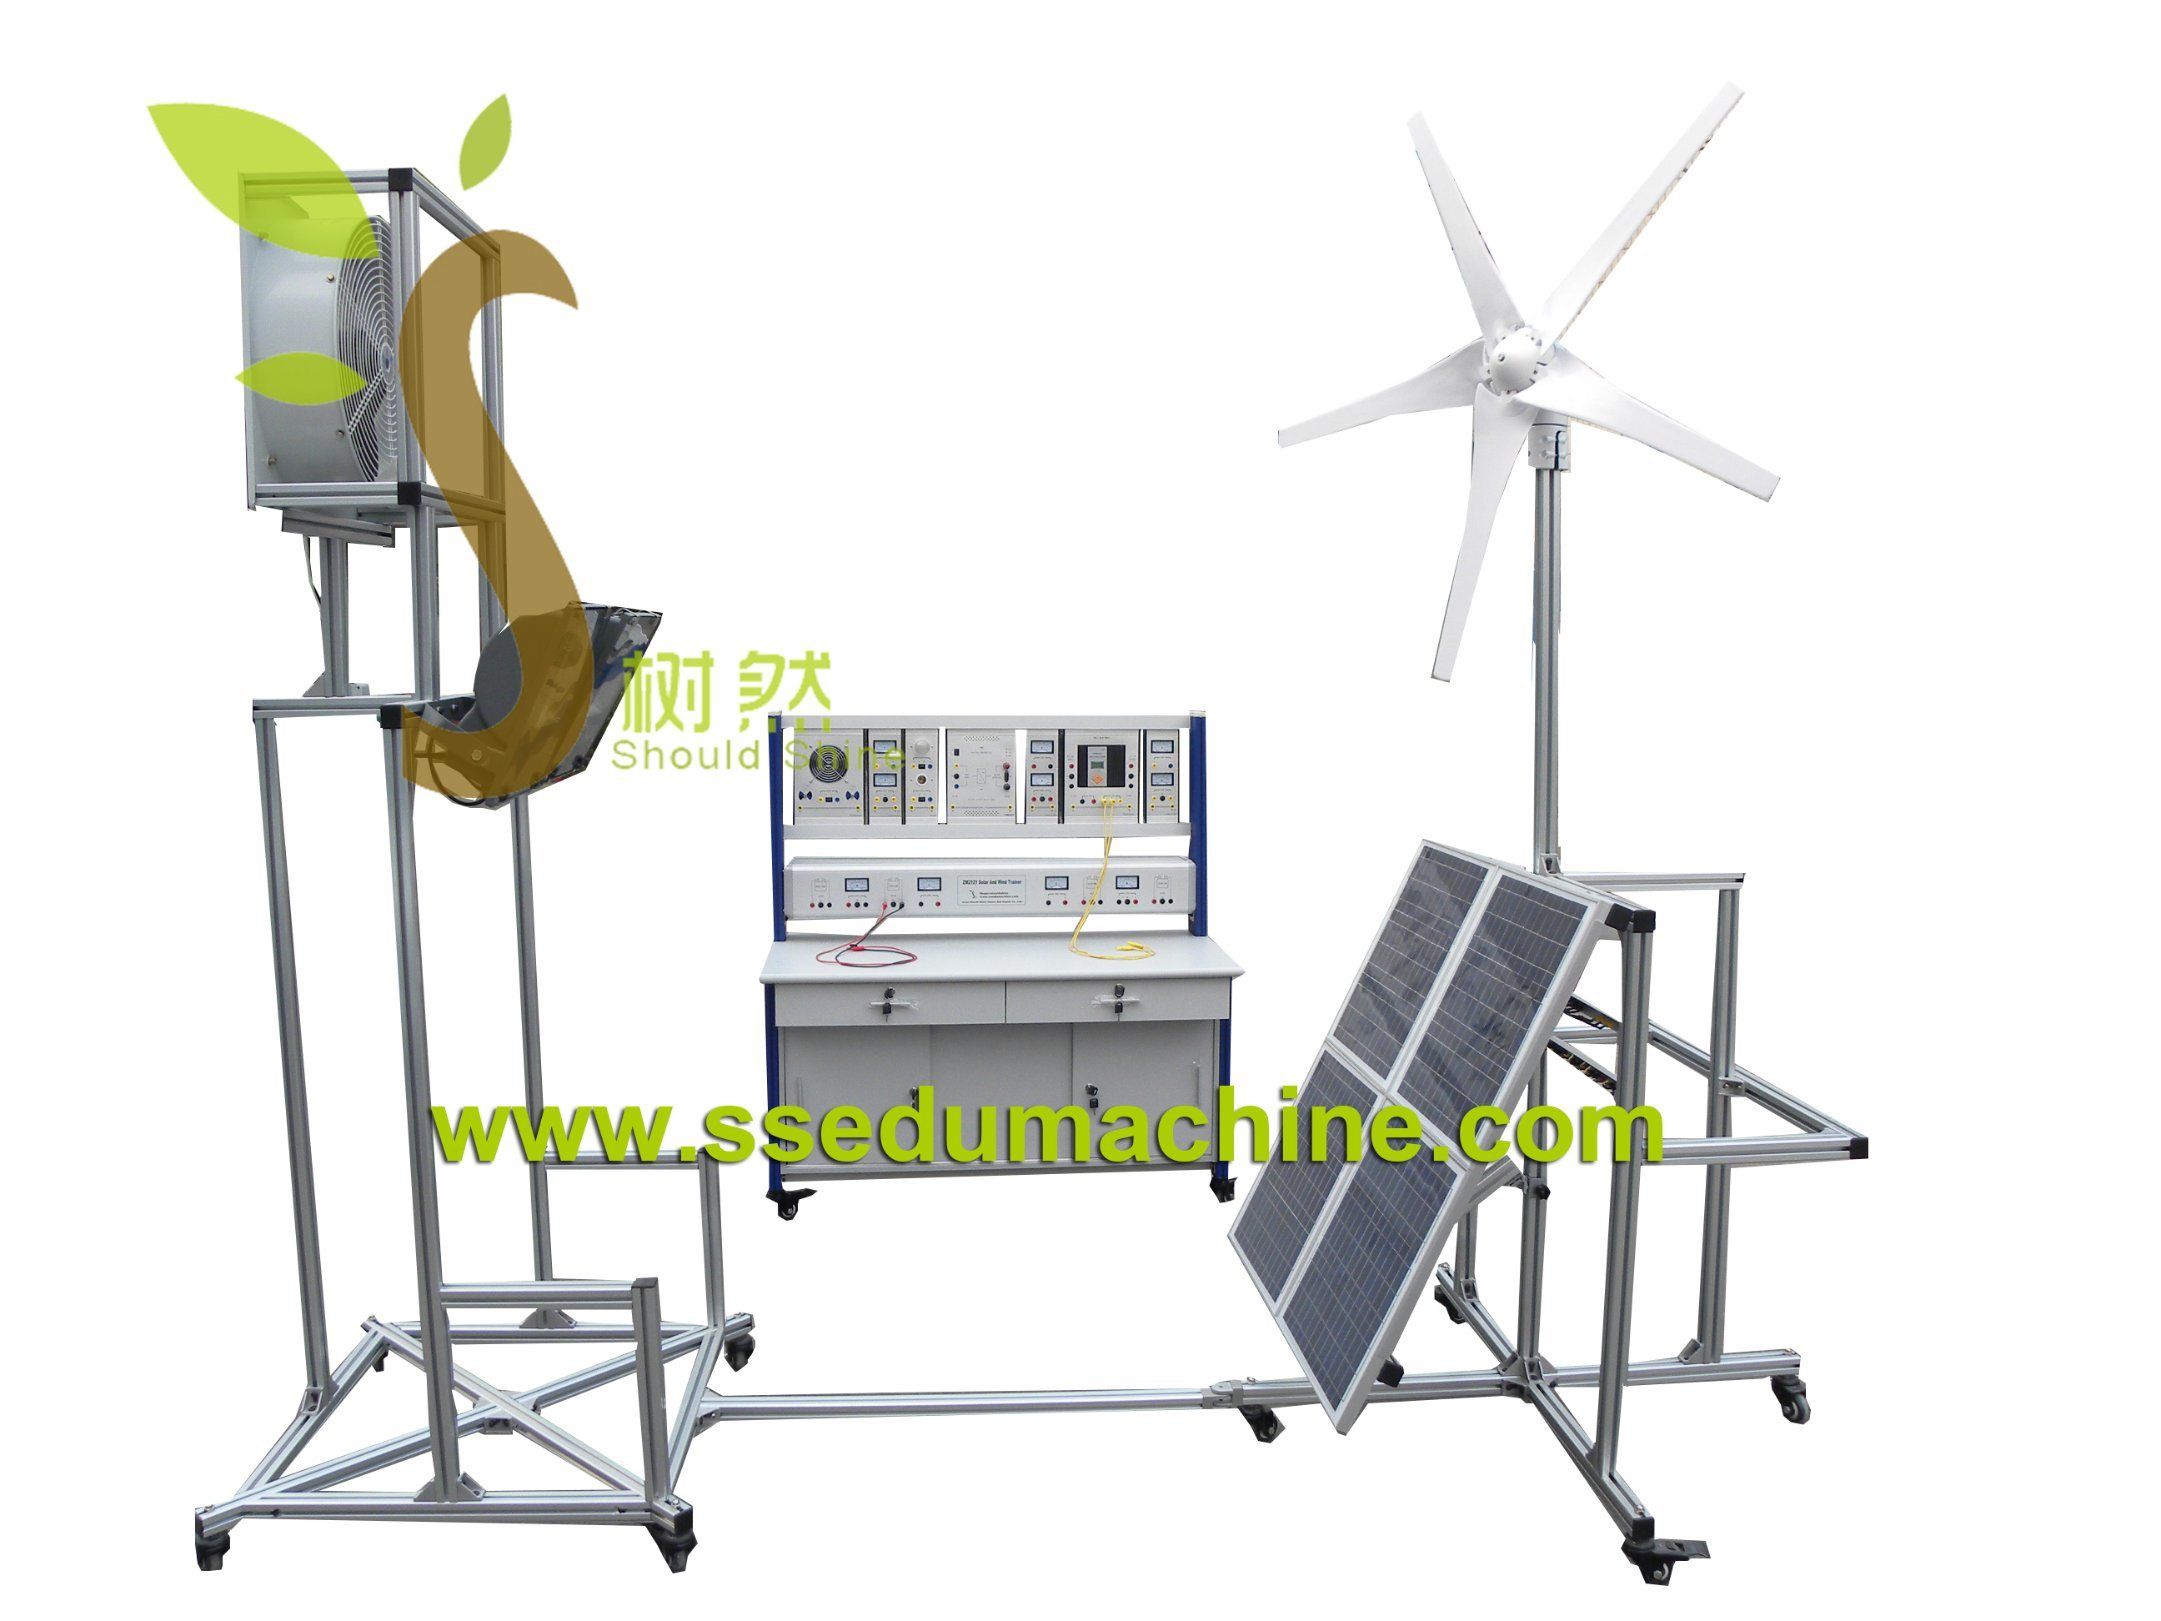 Renewable Training Equipment Solar Wind Trainer Photovoltaic Generation Educational Equipment